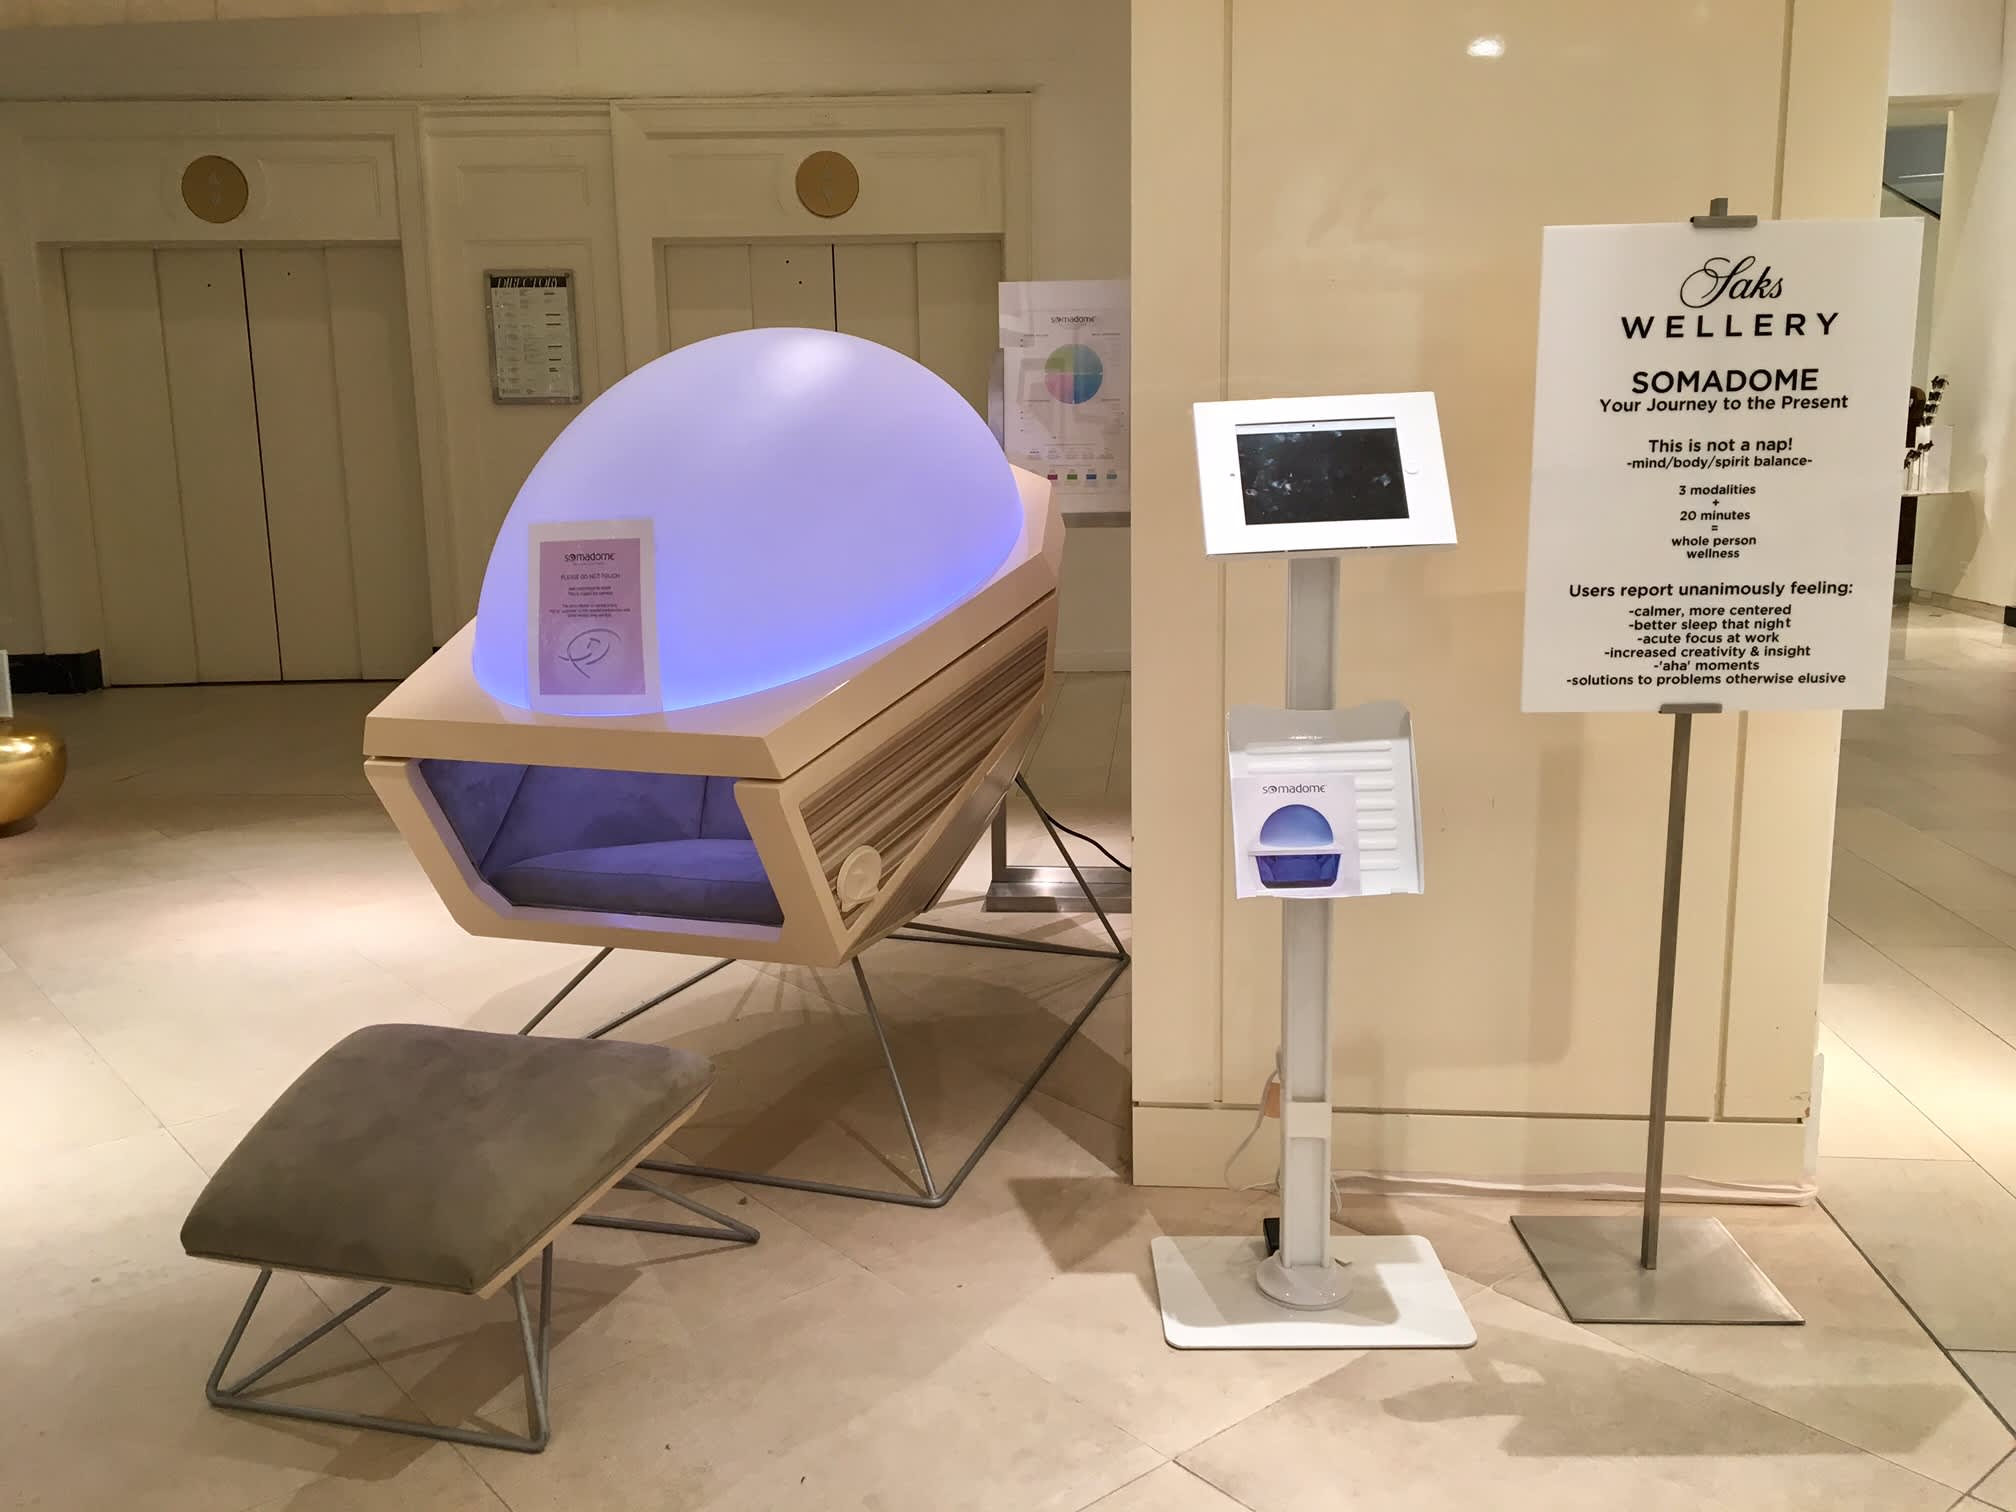 988ee85532 Saks experiments with new wellness services at its Fifth Avenue store